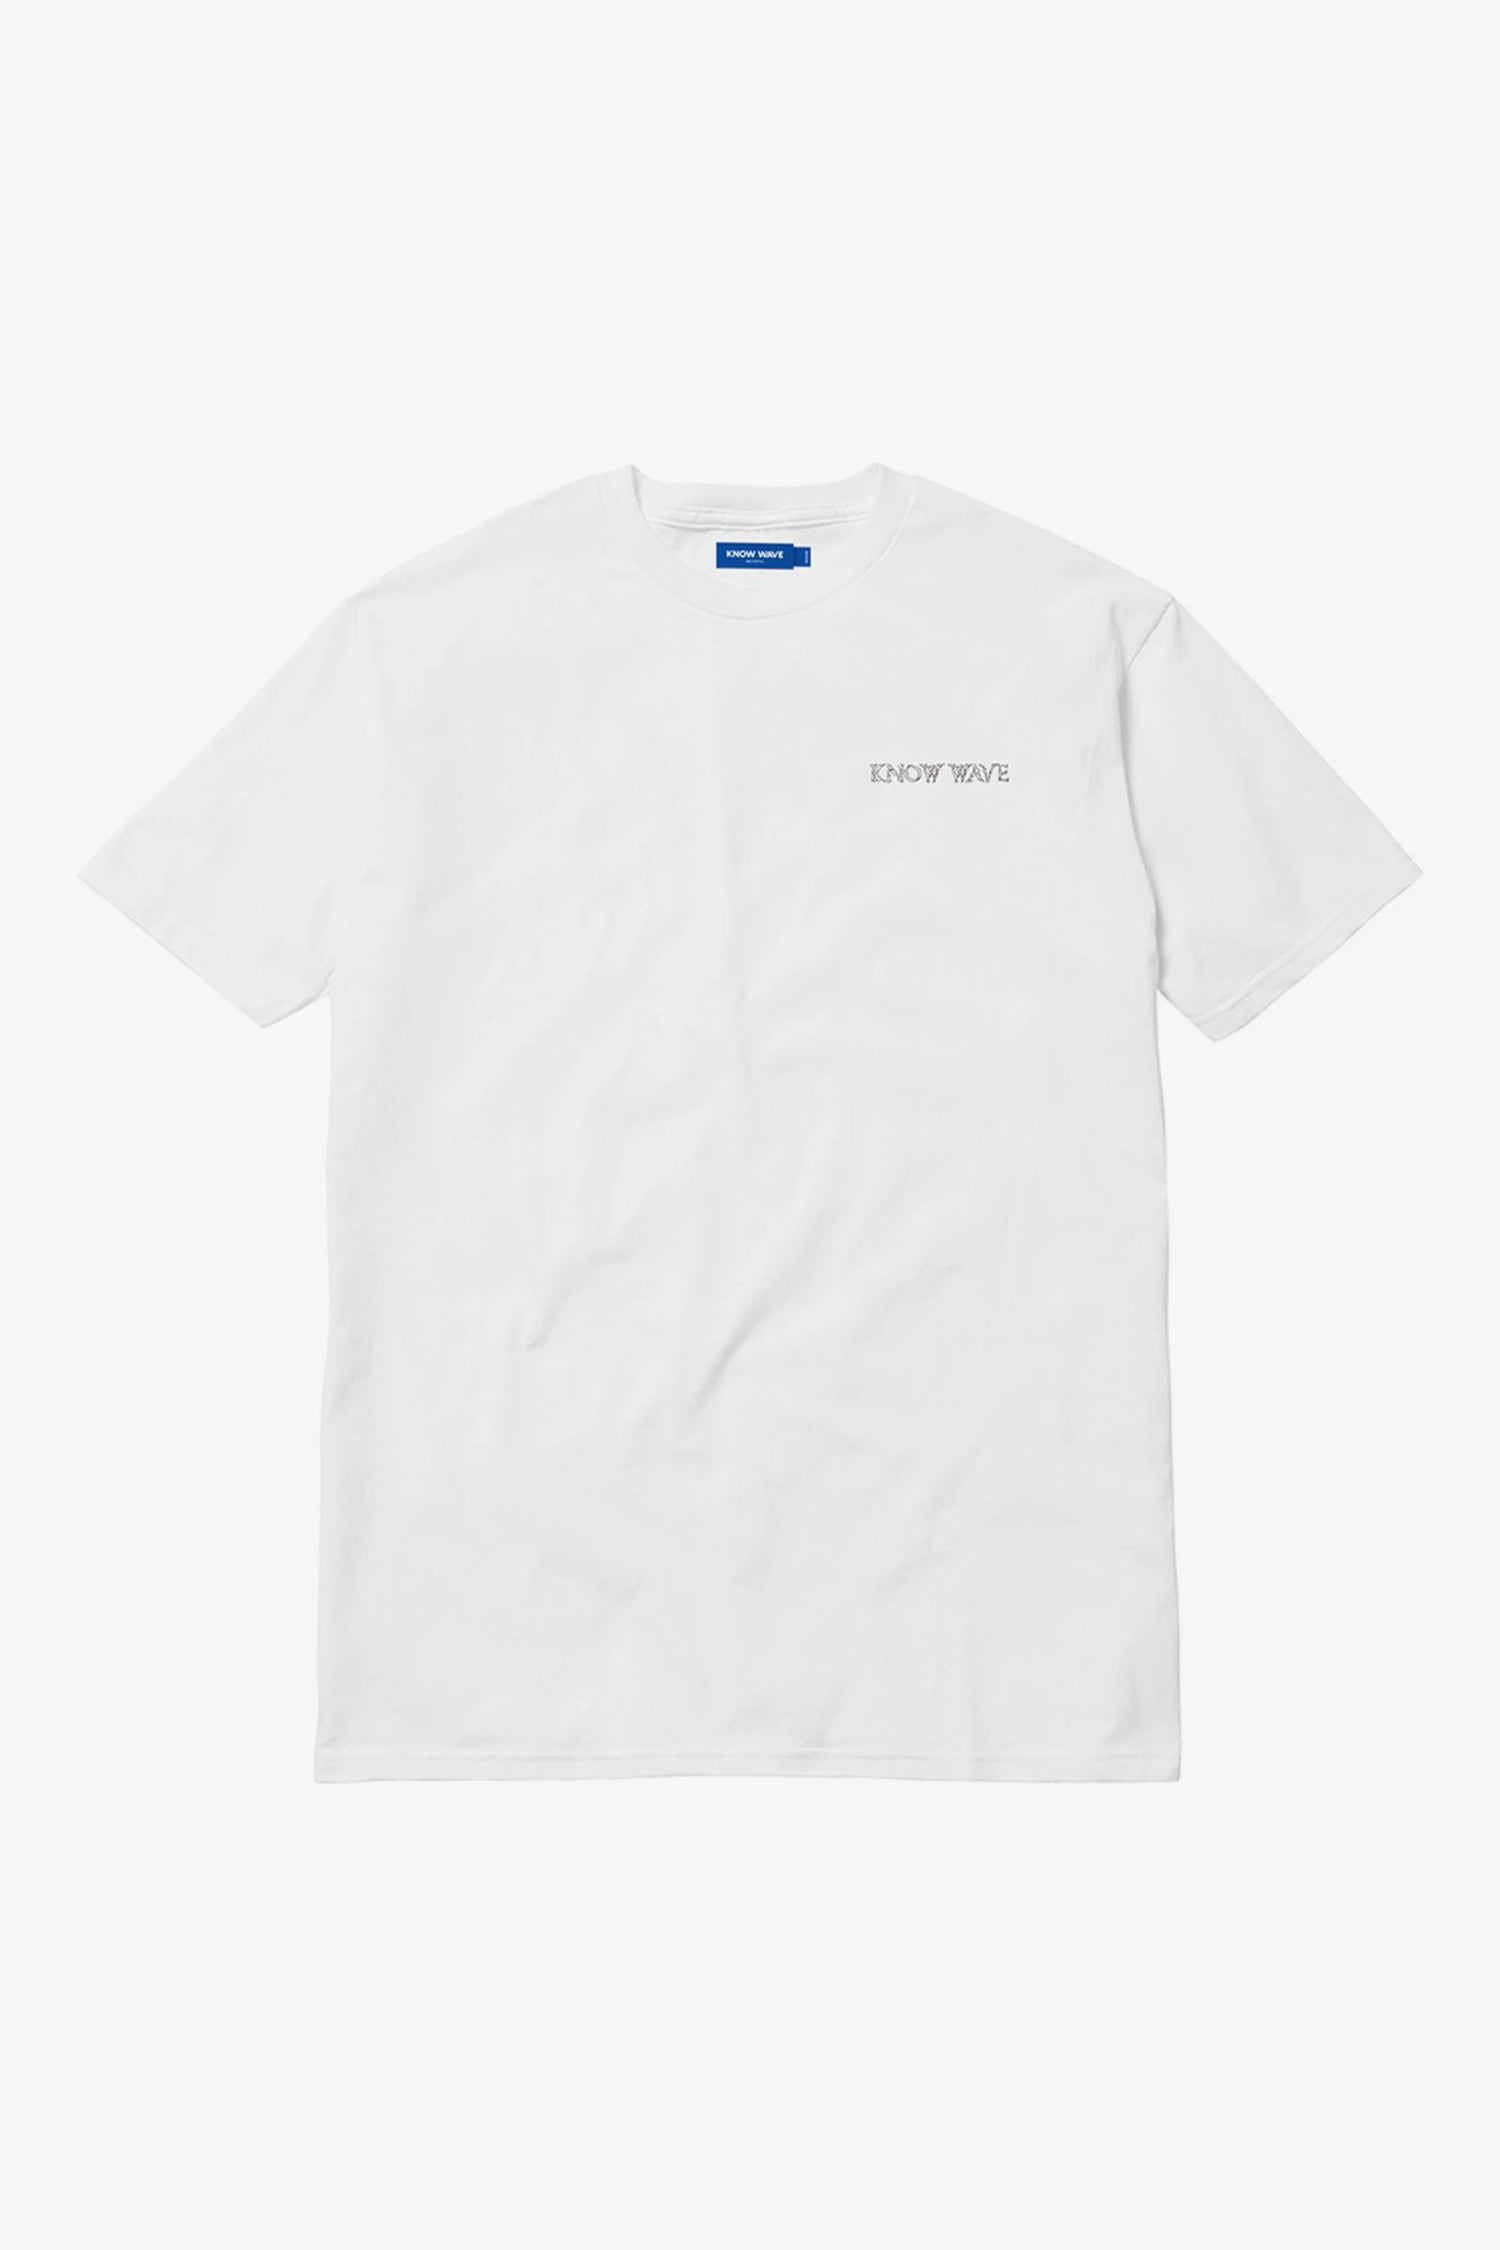 Selectshop FRAME - KNOW WAVE Anxiety T-Shirt T-Shirts Dubai